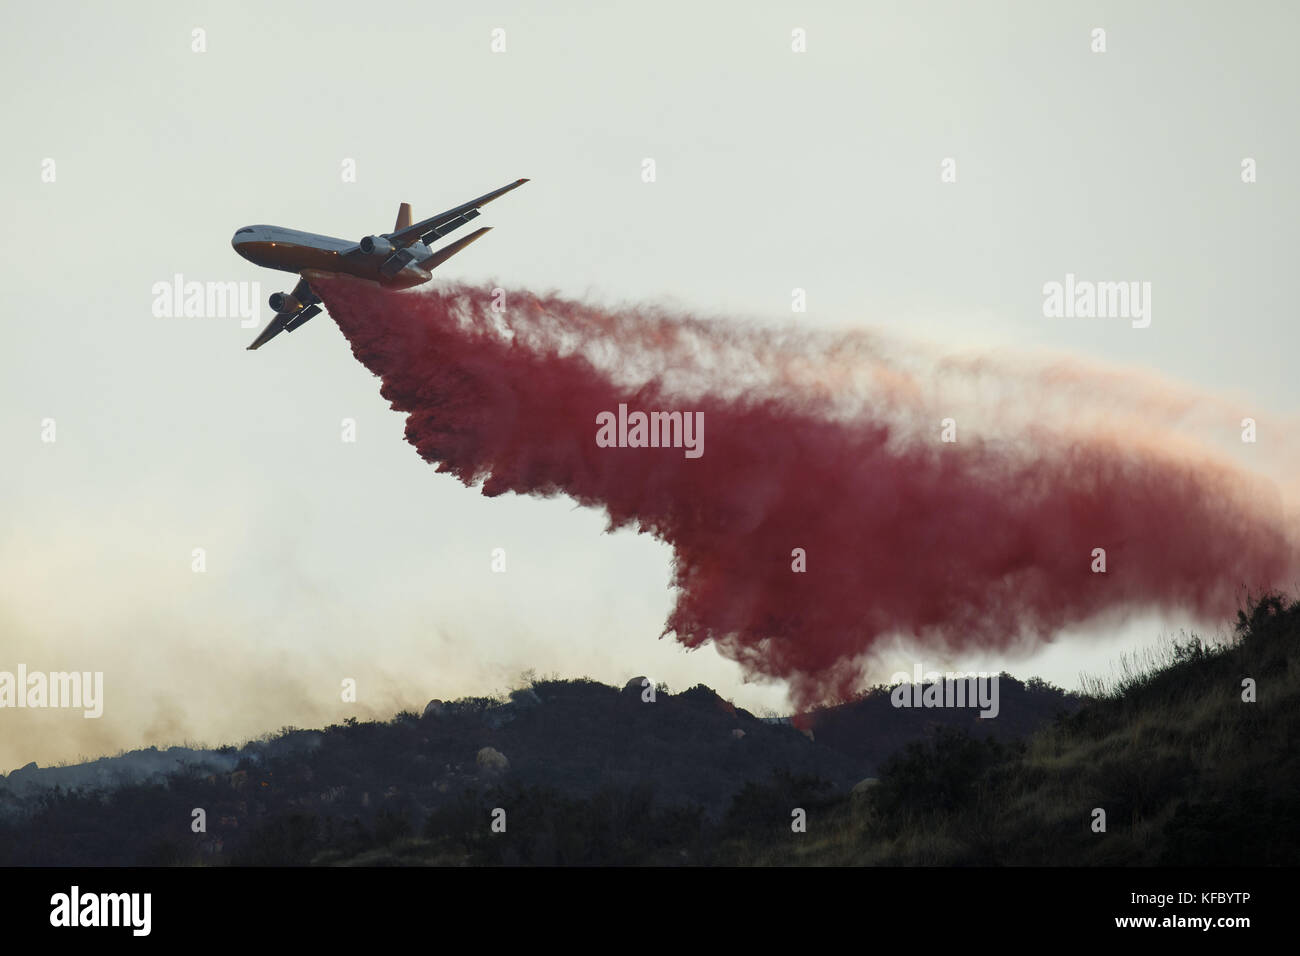 Wildomar, CA, USA. 26th Oct, 2017. A resident takes a video as the Cal Fire DC-10 firefighting aircraft battles - Stock Image